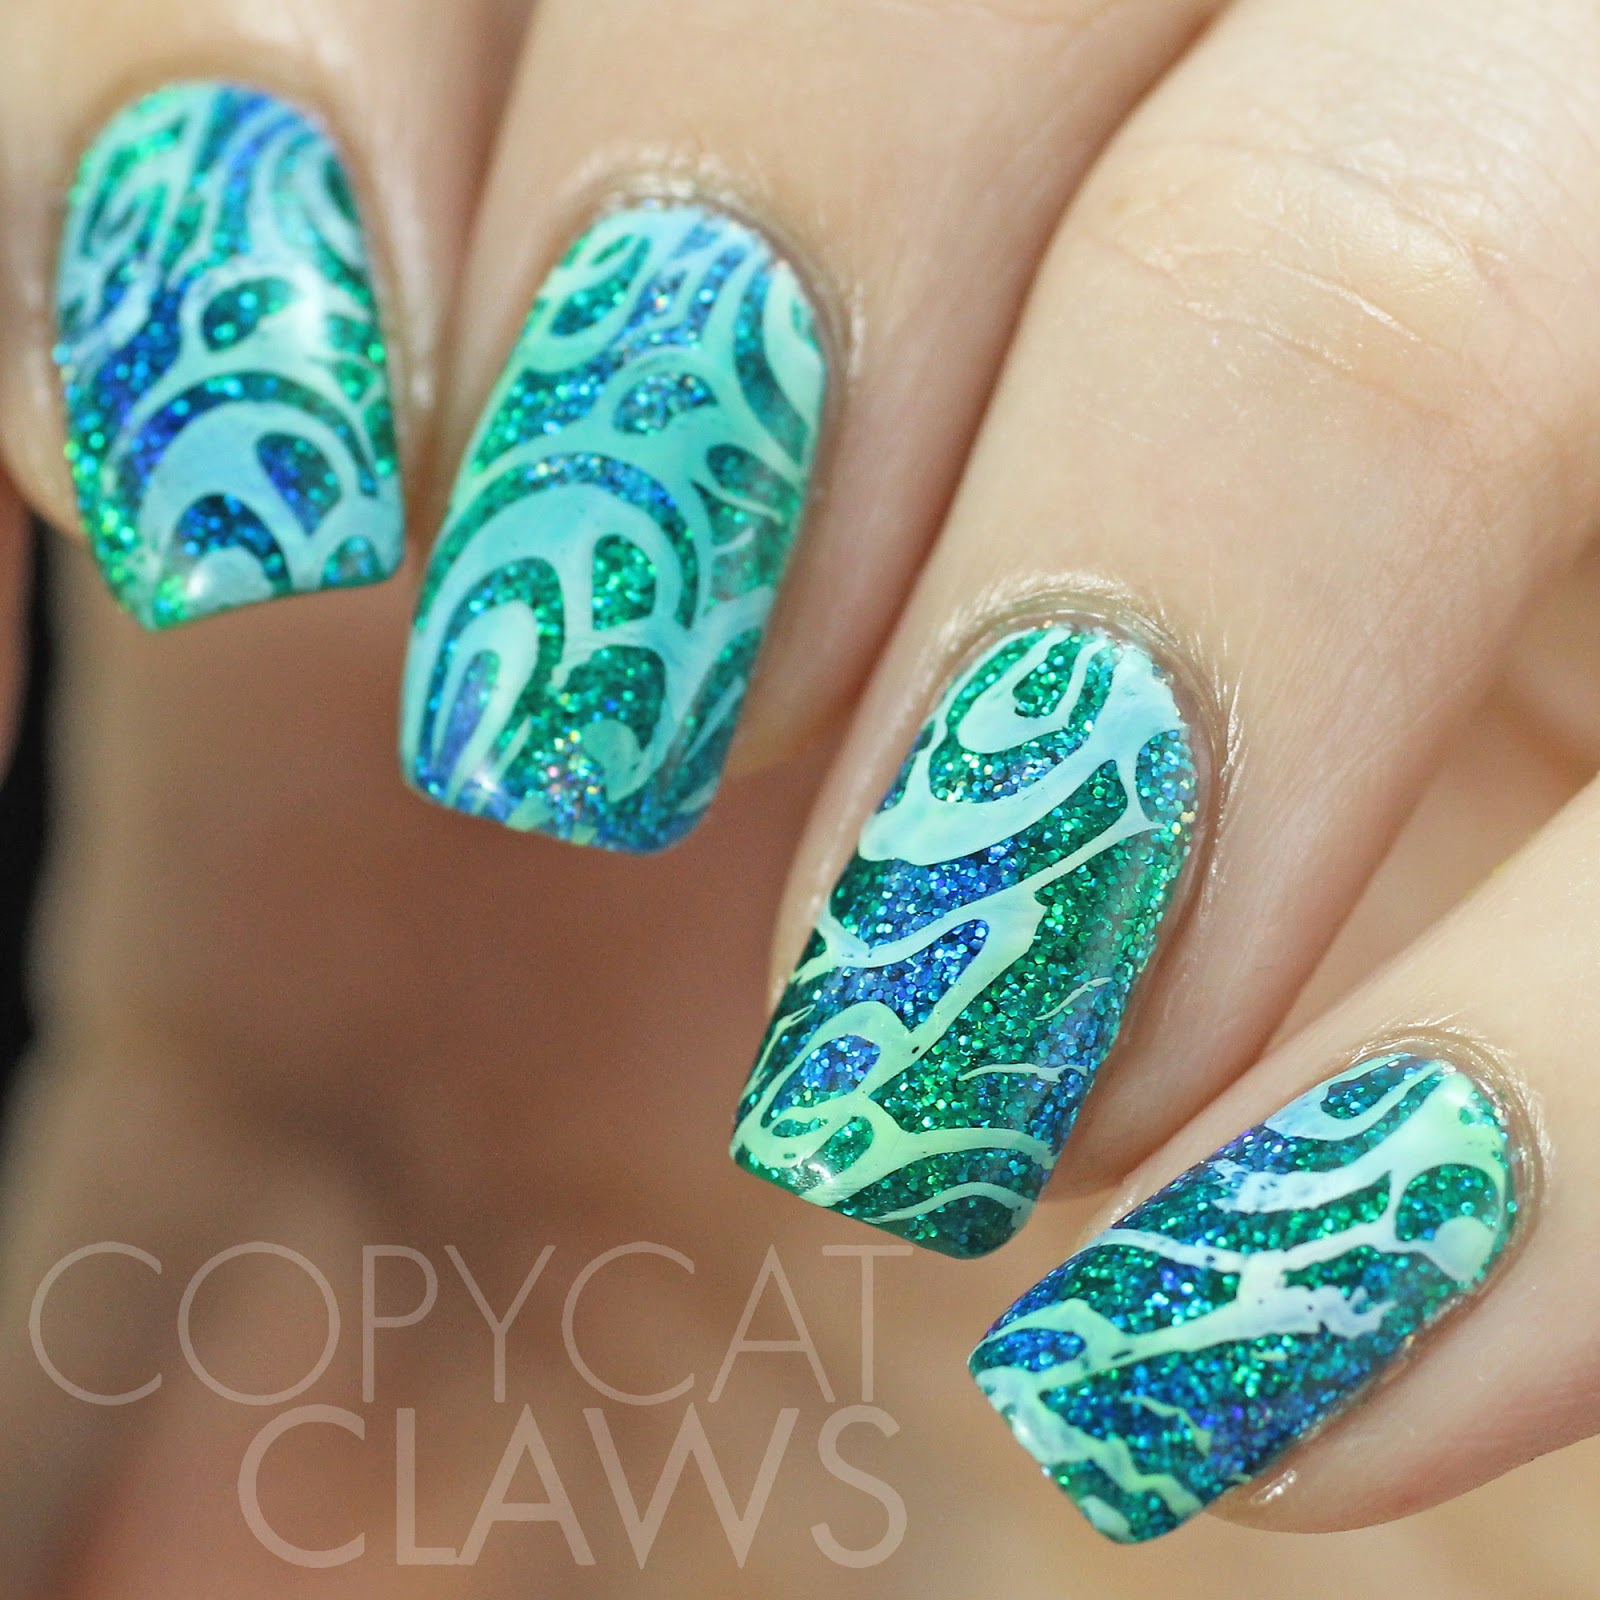 Green Glitter Nail Polish Uk: Copycat Claws: Nail Stamping Over Glitter And Color4Nails